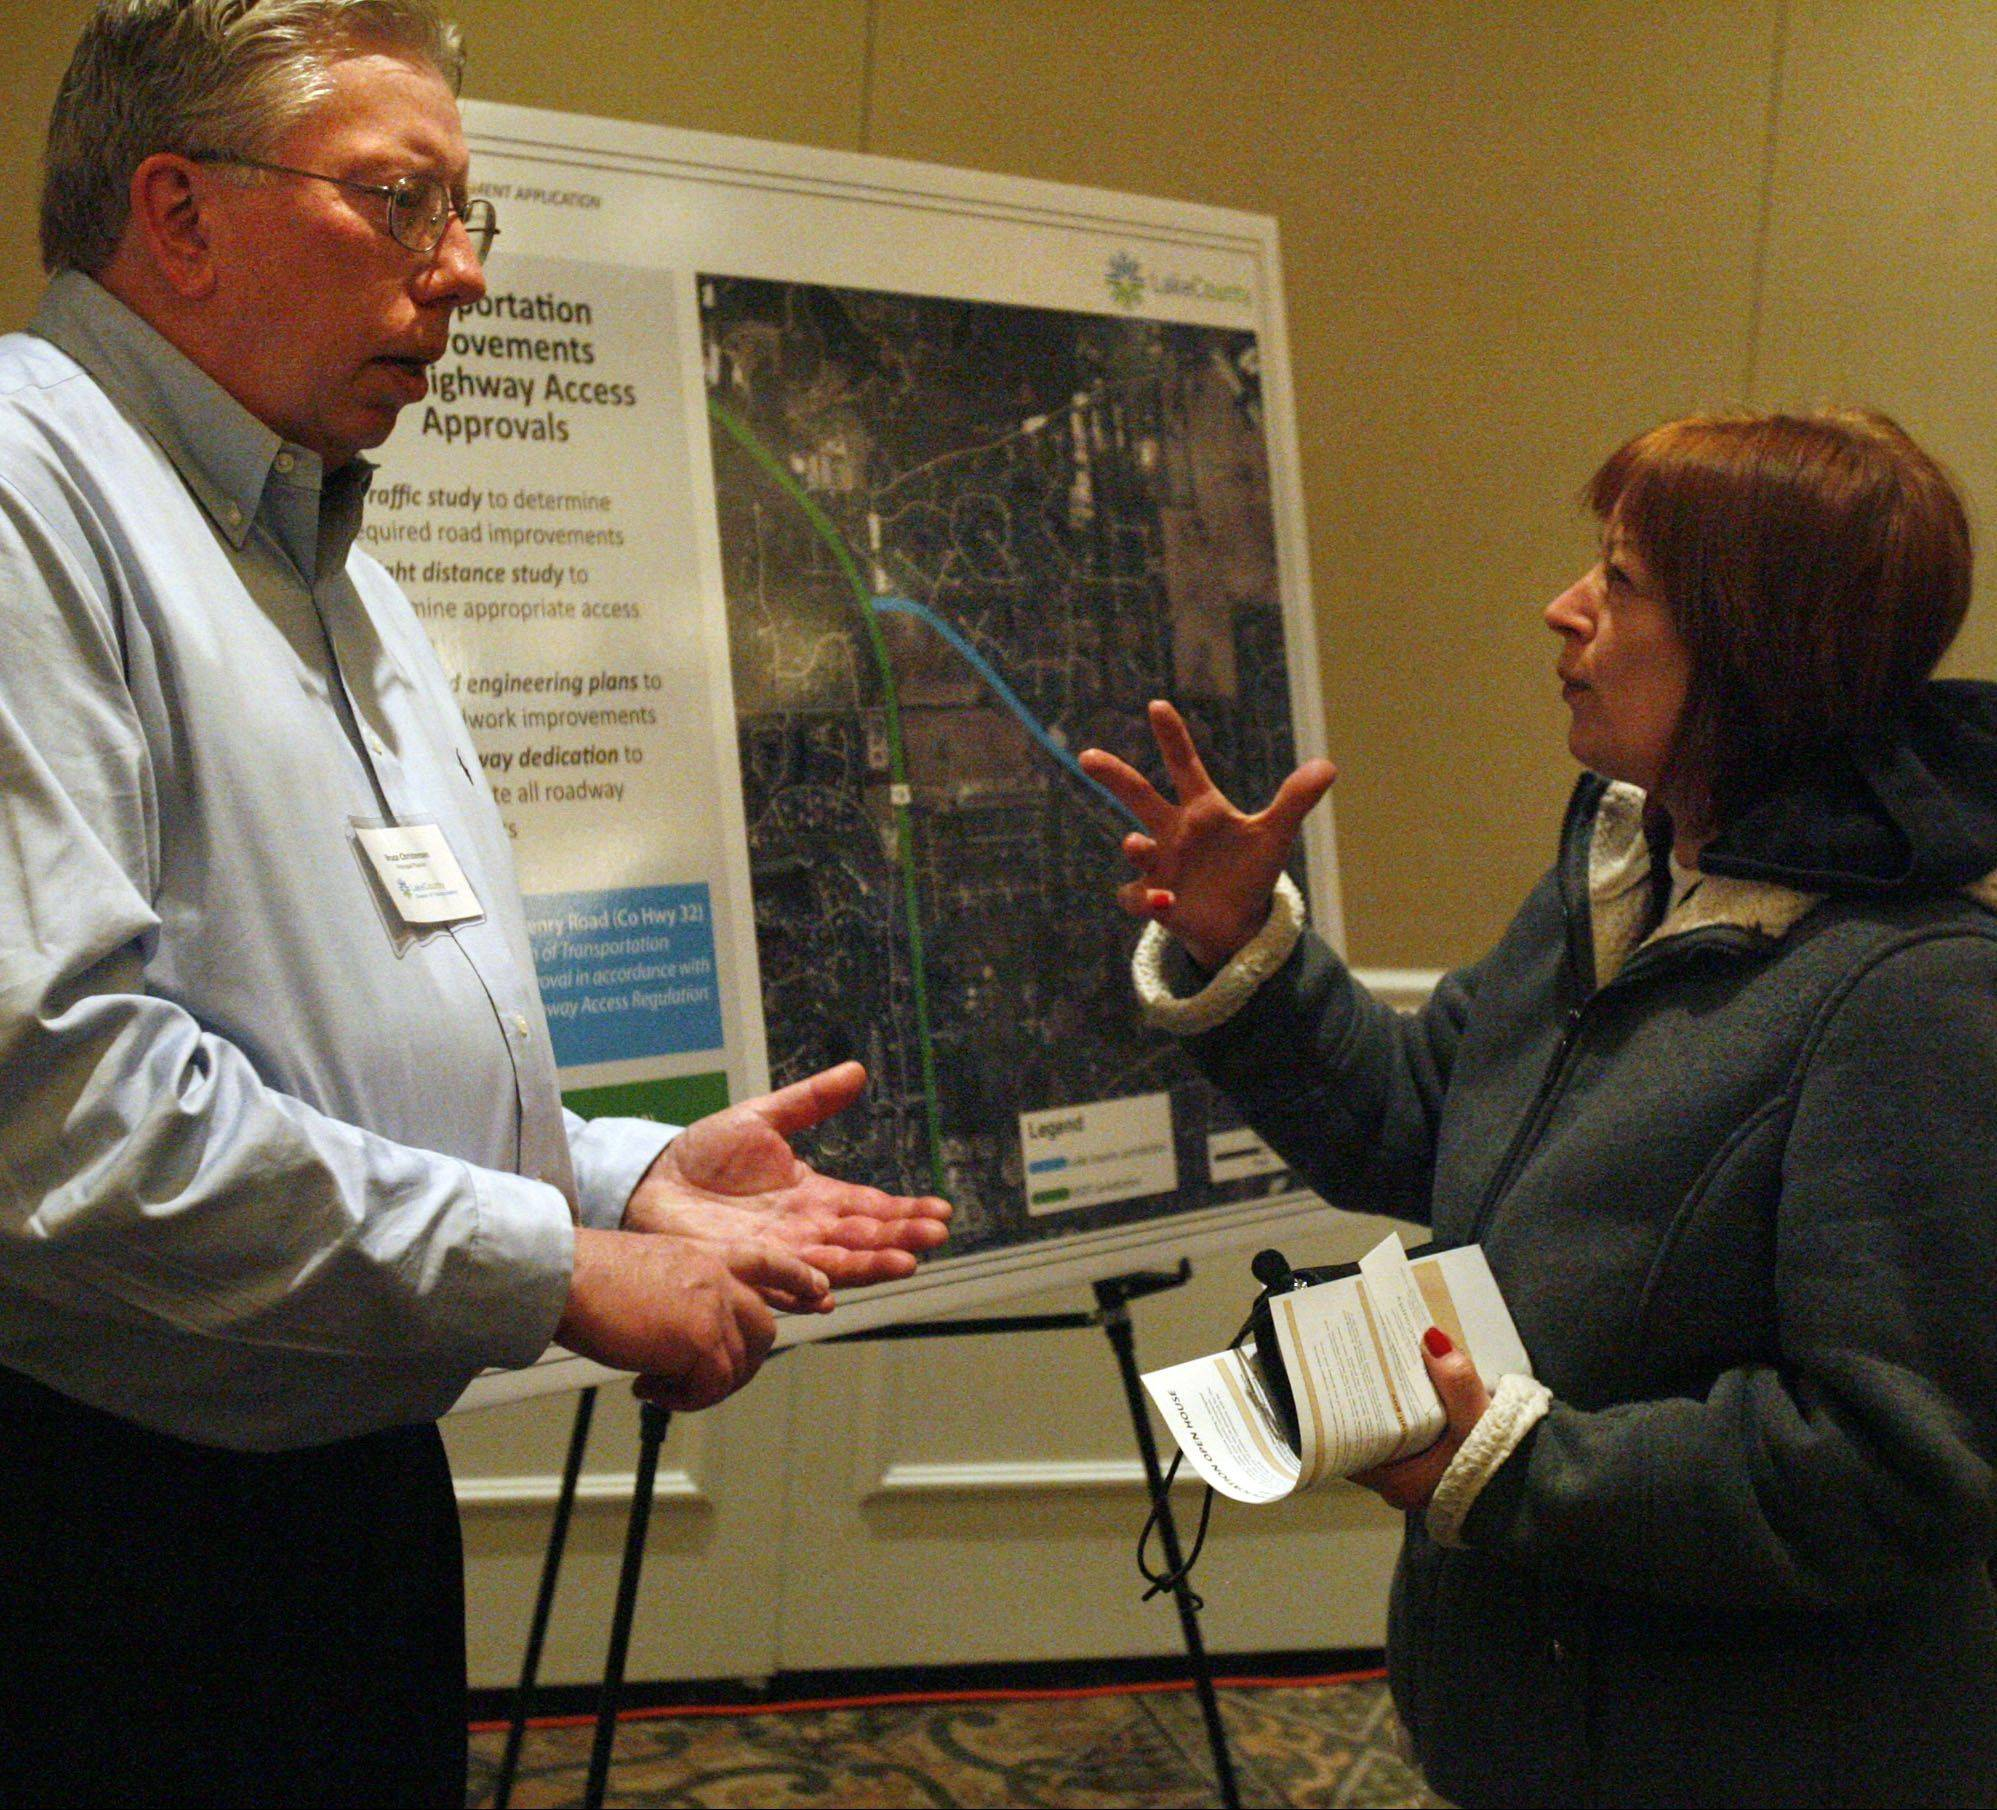 Karen Sande of Kildeer discusses development of a shopping mall with Lake County planner Bruce Christensen at a Saturday open house.